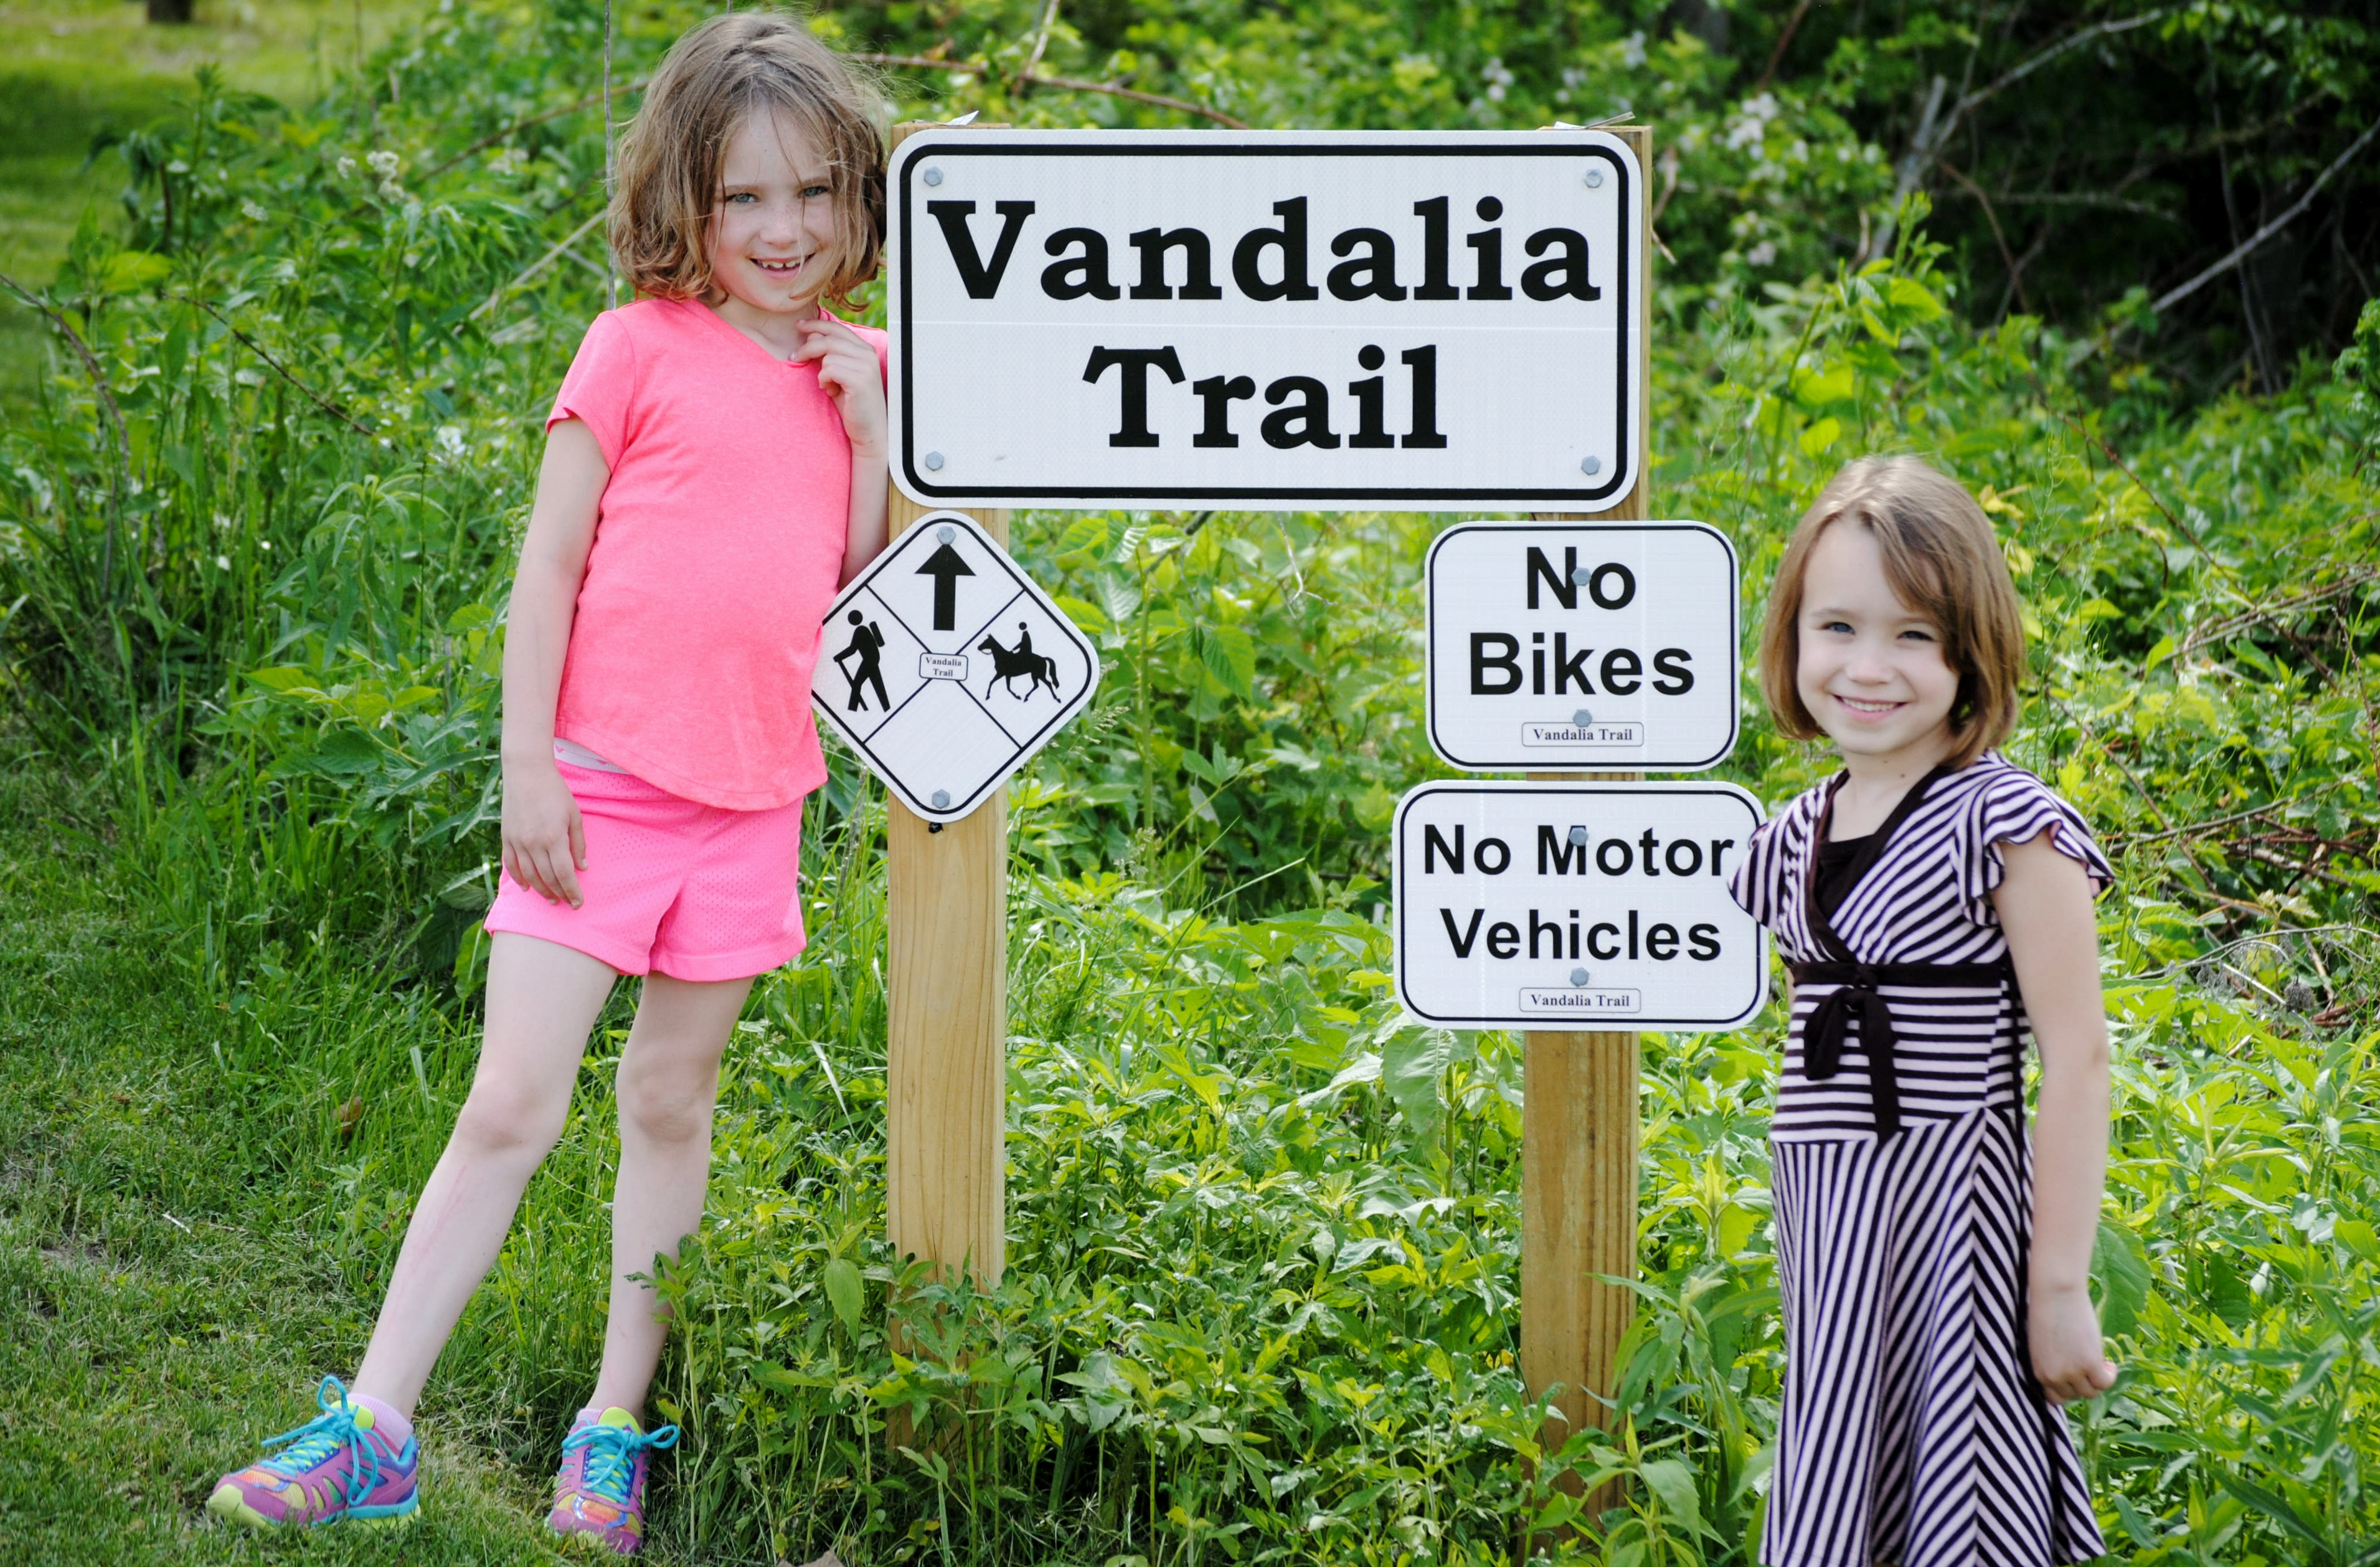 The Vandalia Trail running between Amo and Coatesville is great for hikers, equestrians and families.